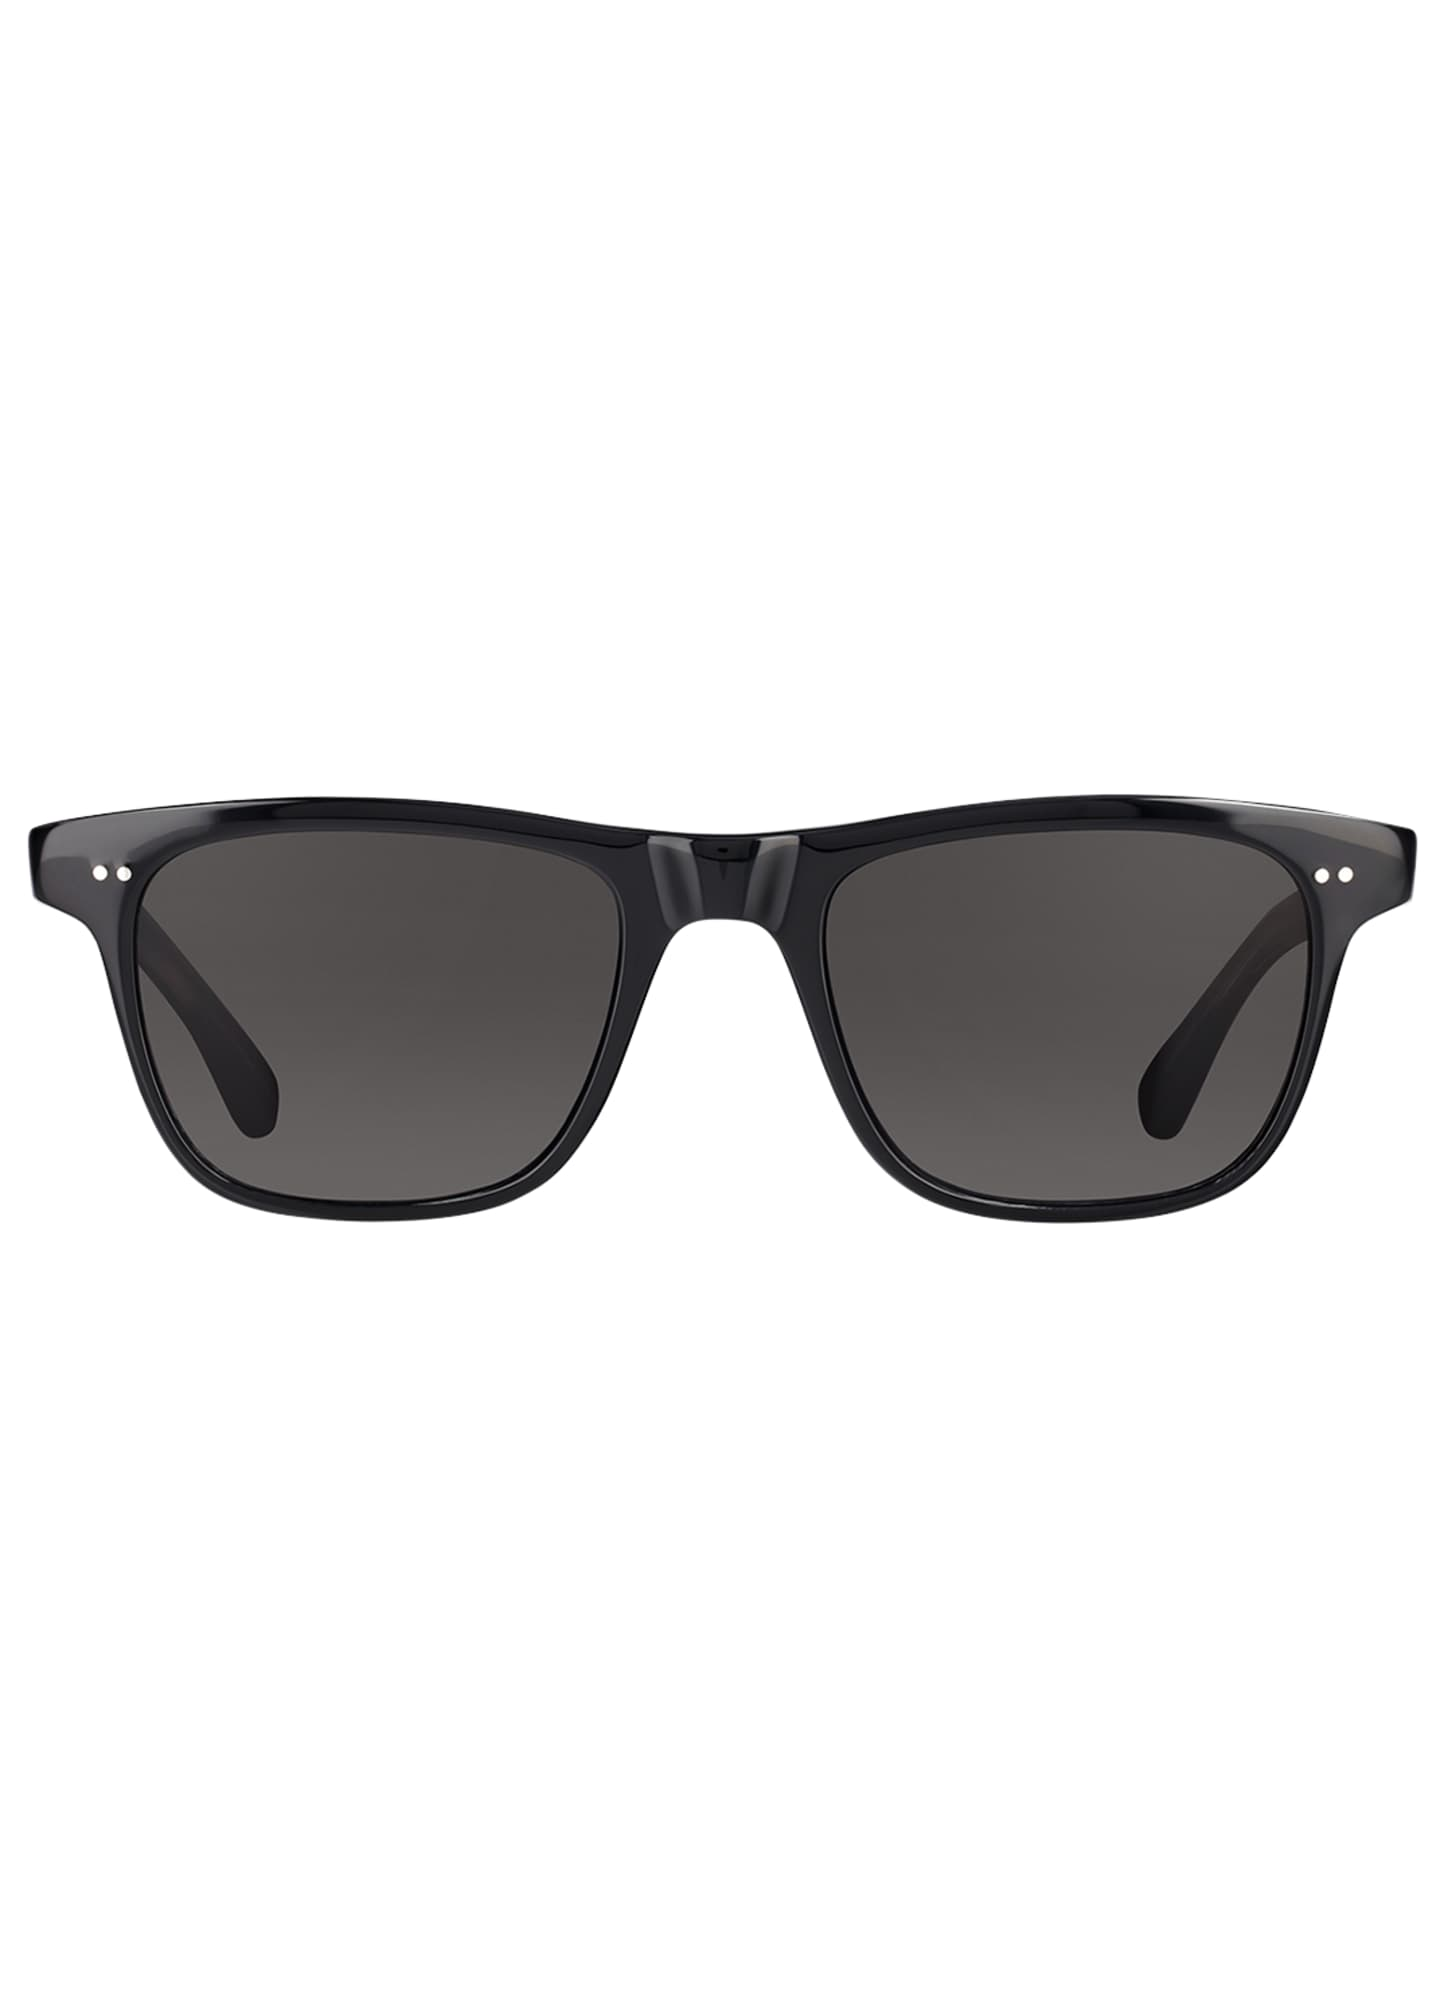 Image 2 of 2: Men's Wavecrest Acetate Sunglasses